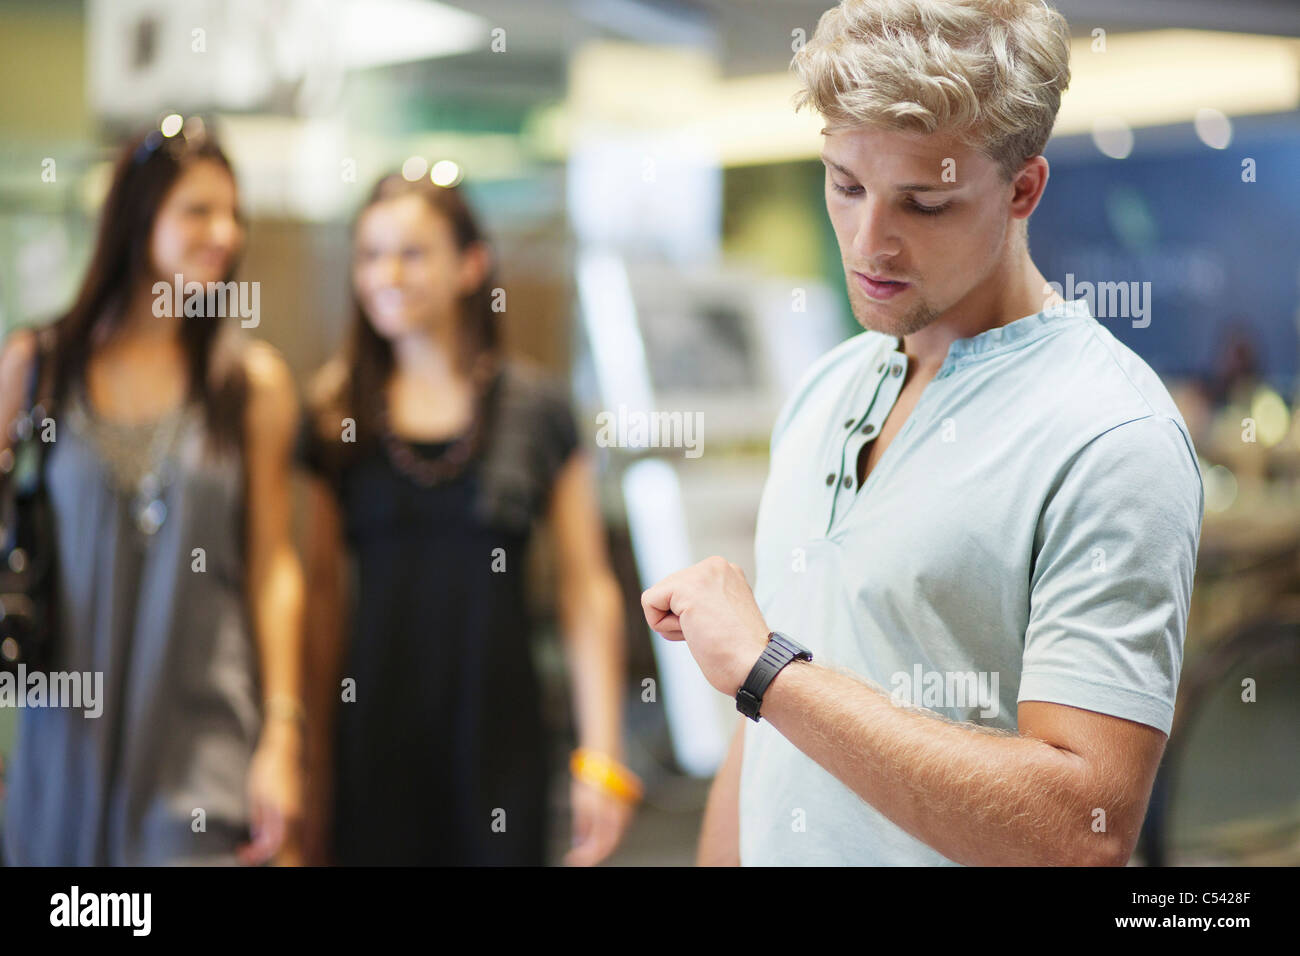 Young man checking the time with two women in the background at a clothing store - Stock Image